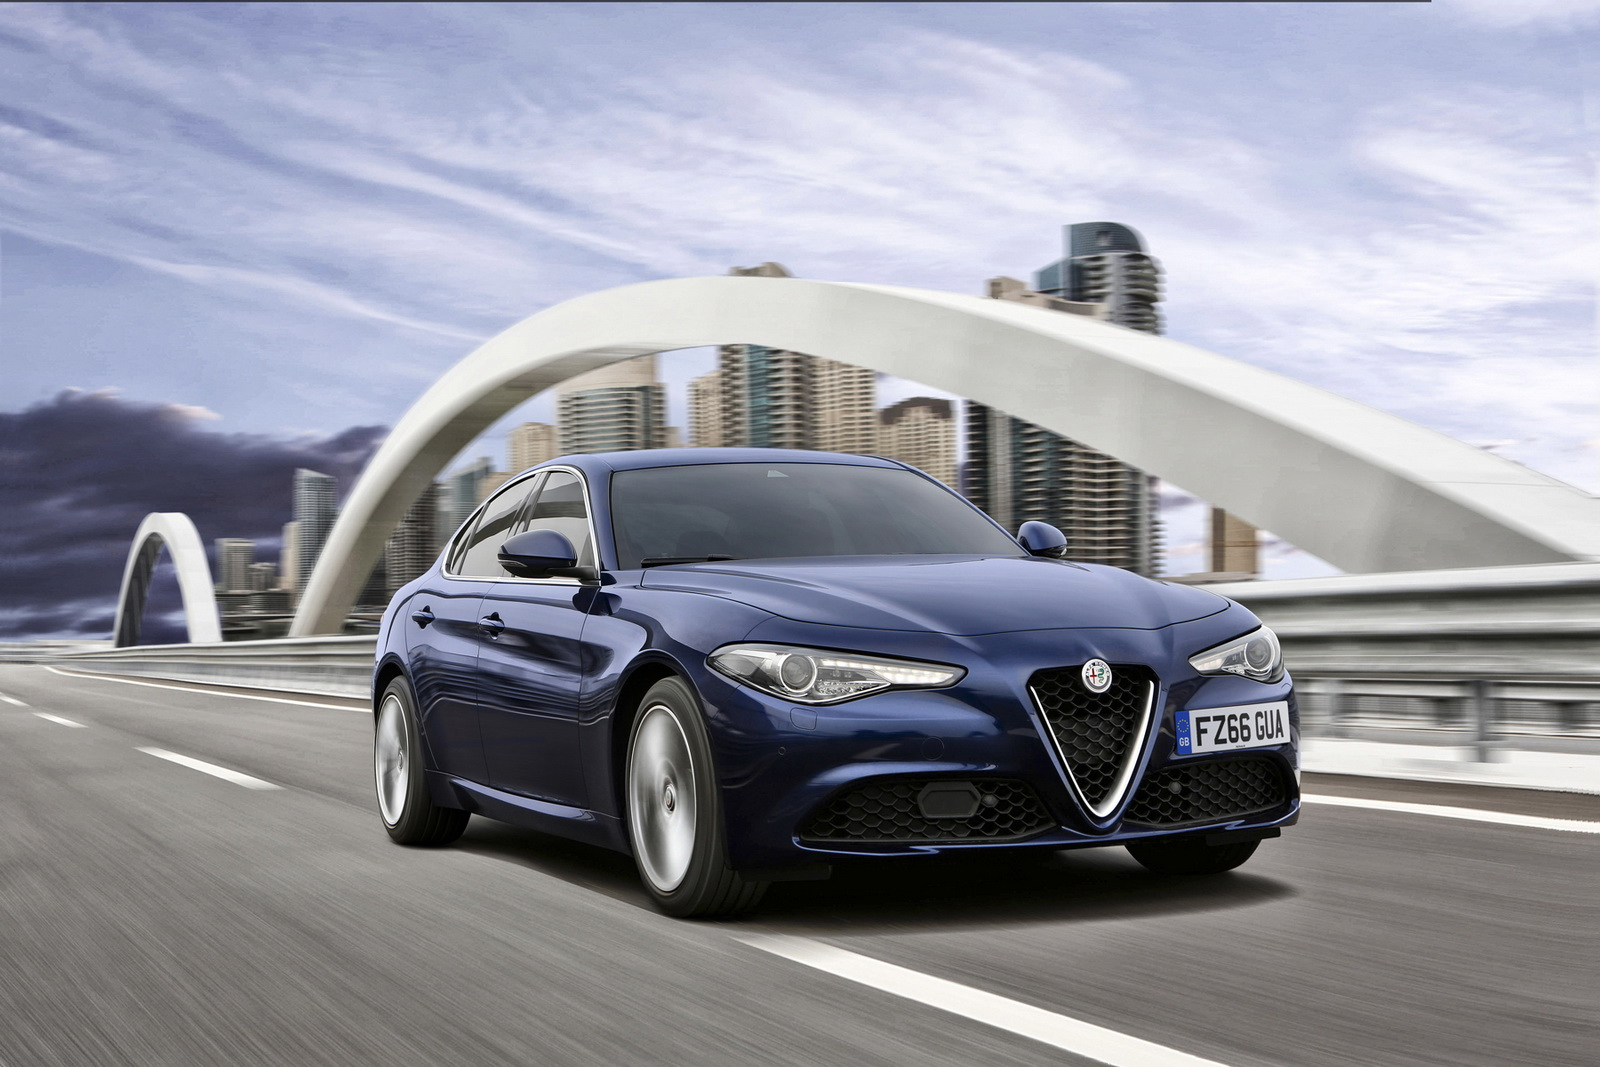 alfa romeo details giulia s uk range priced from 29 180 carscoops. Black Bedroom Furniture Sets. Home Design Ideas